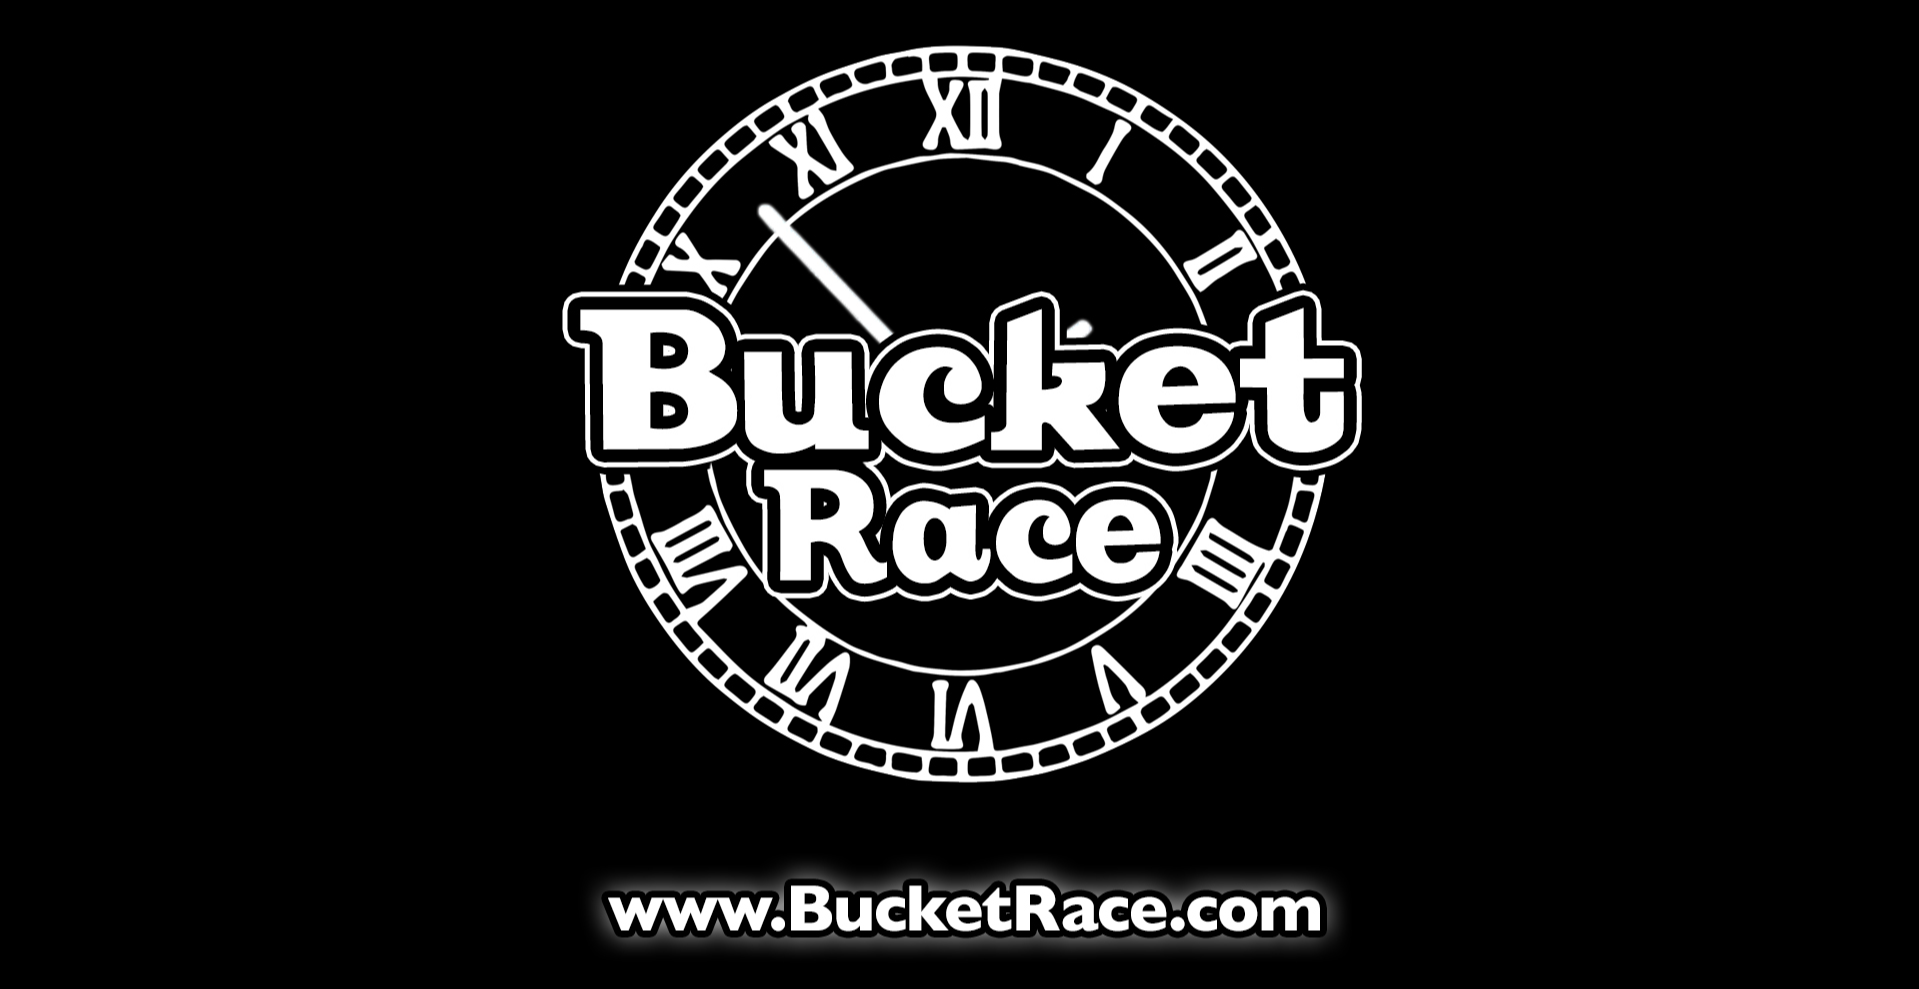 BucketRace (Online Scavenger Hunt) Private Booking